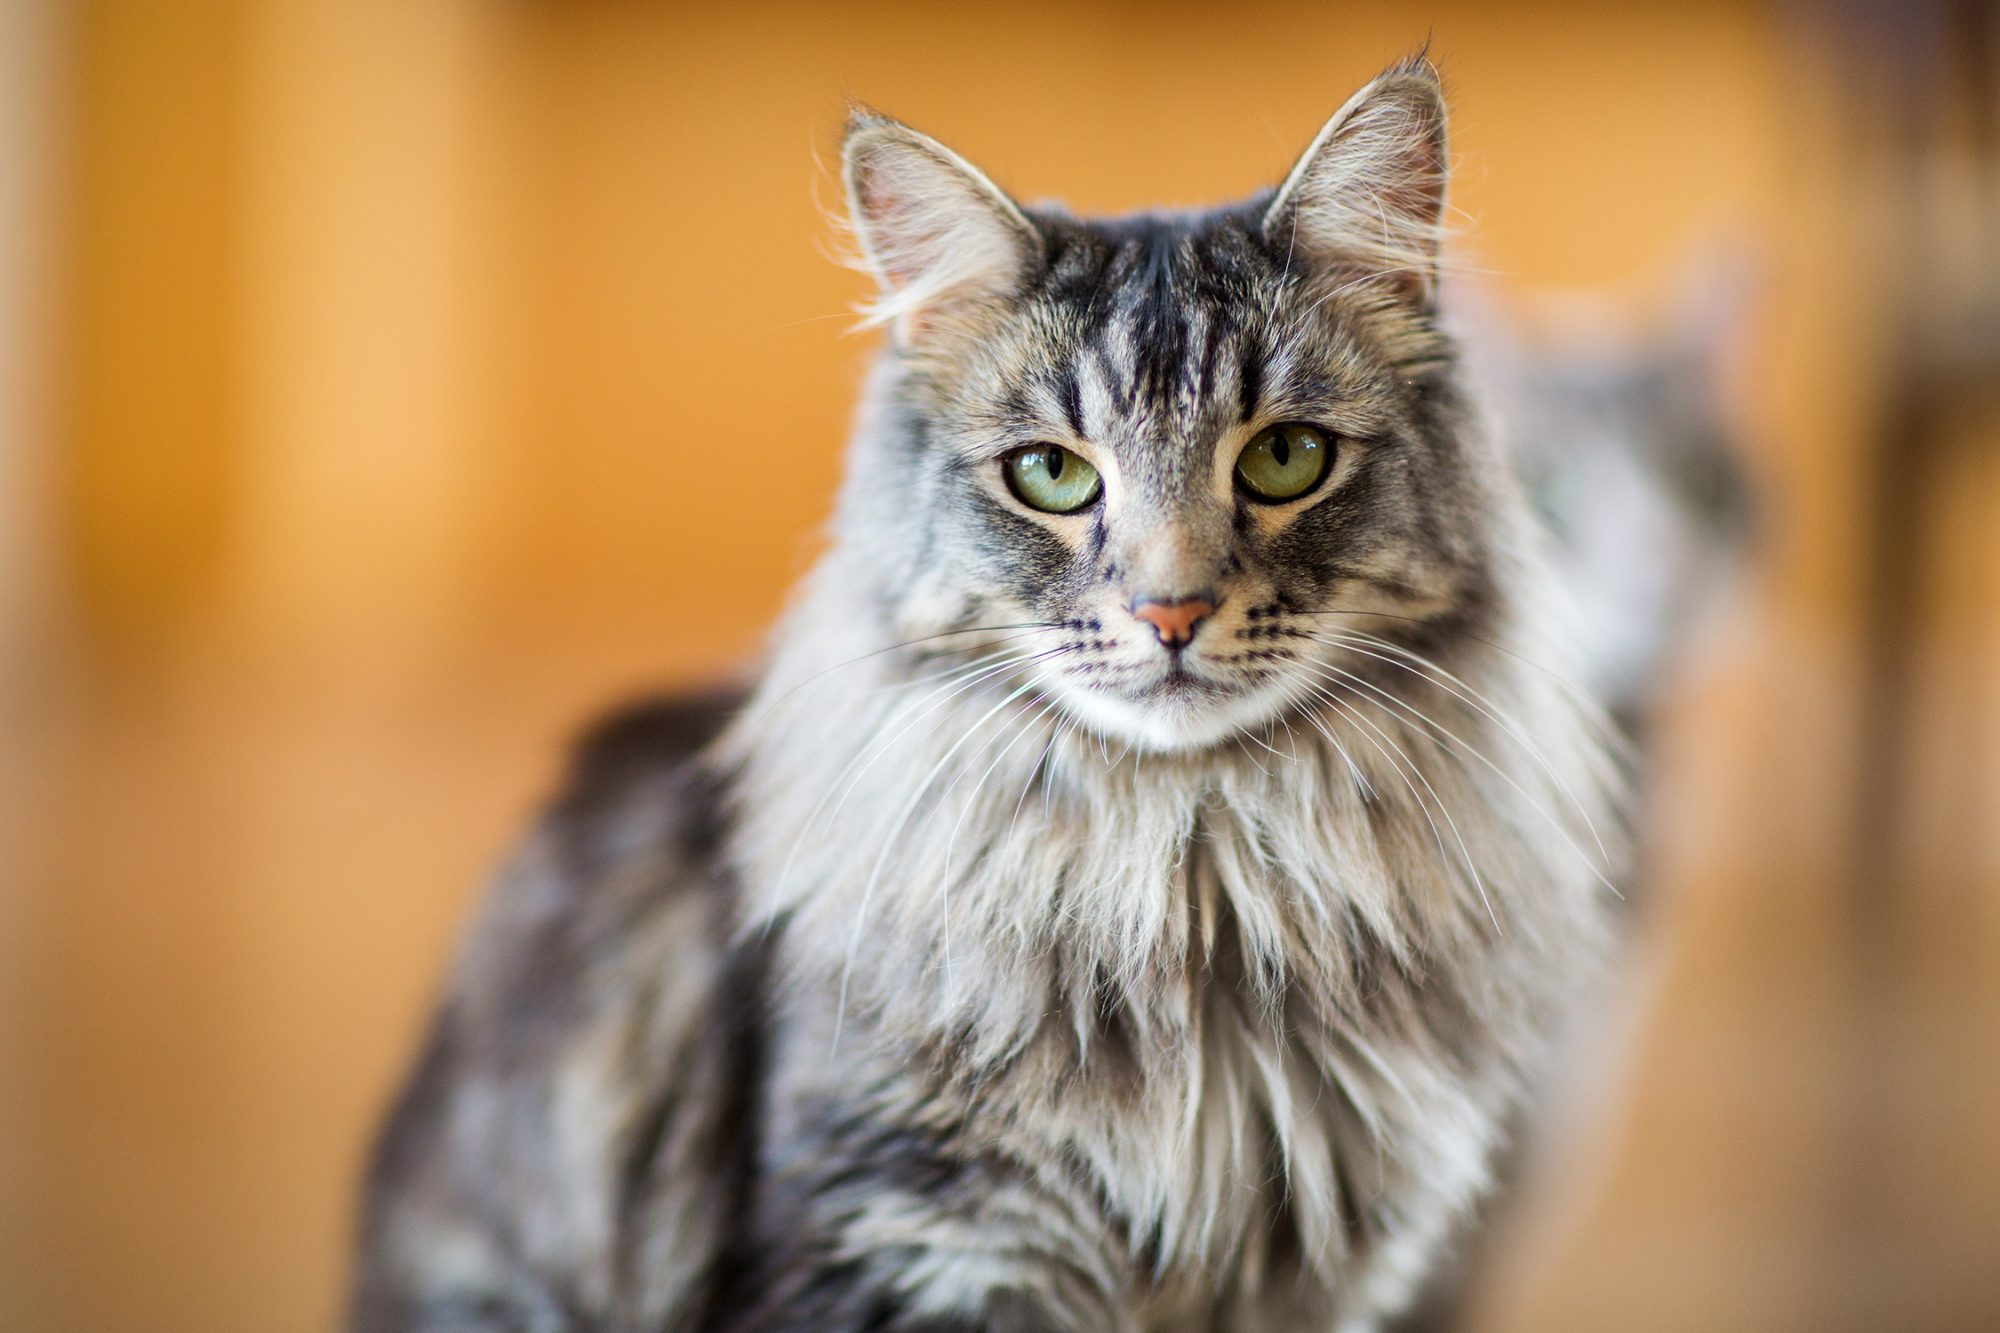 A close-up view of a Maine Coon cat indoors